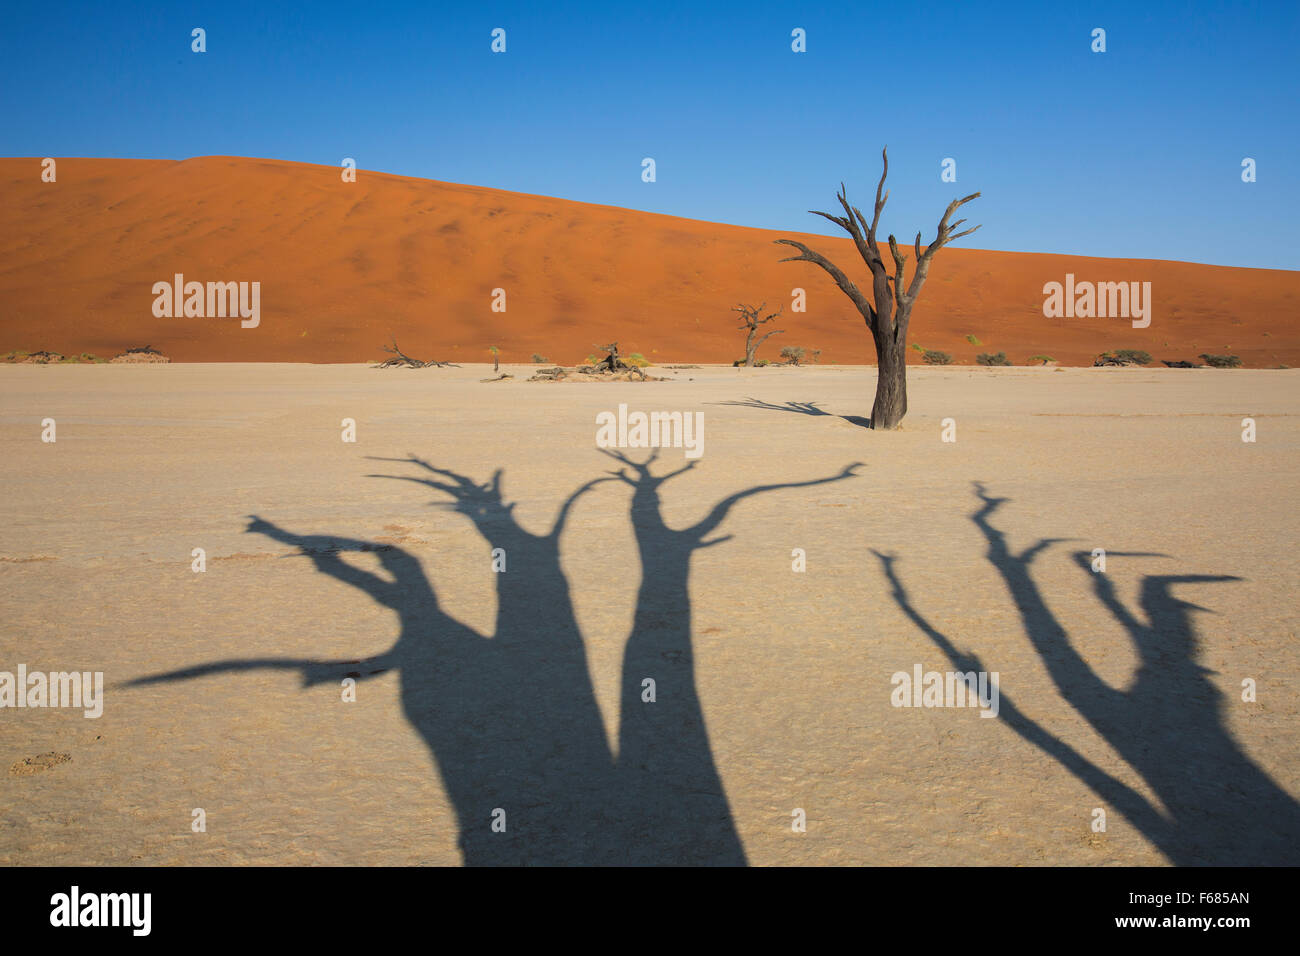 Shadows of desiccated camel-thorn trees in Deadvlei at sunrise, Namibia, Africa - Stock Image